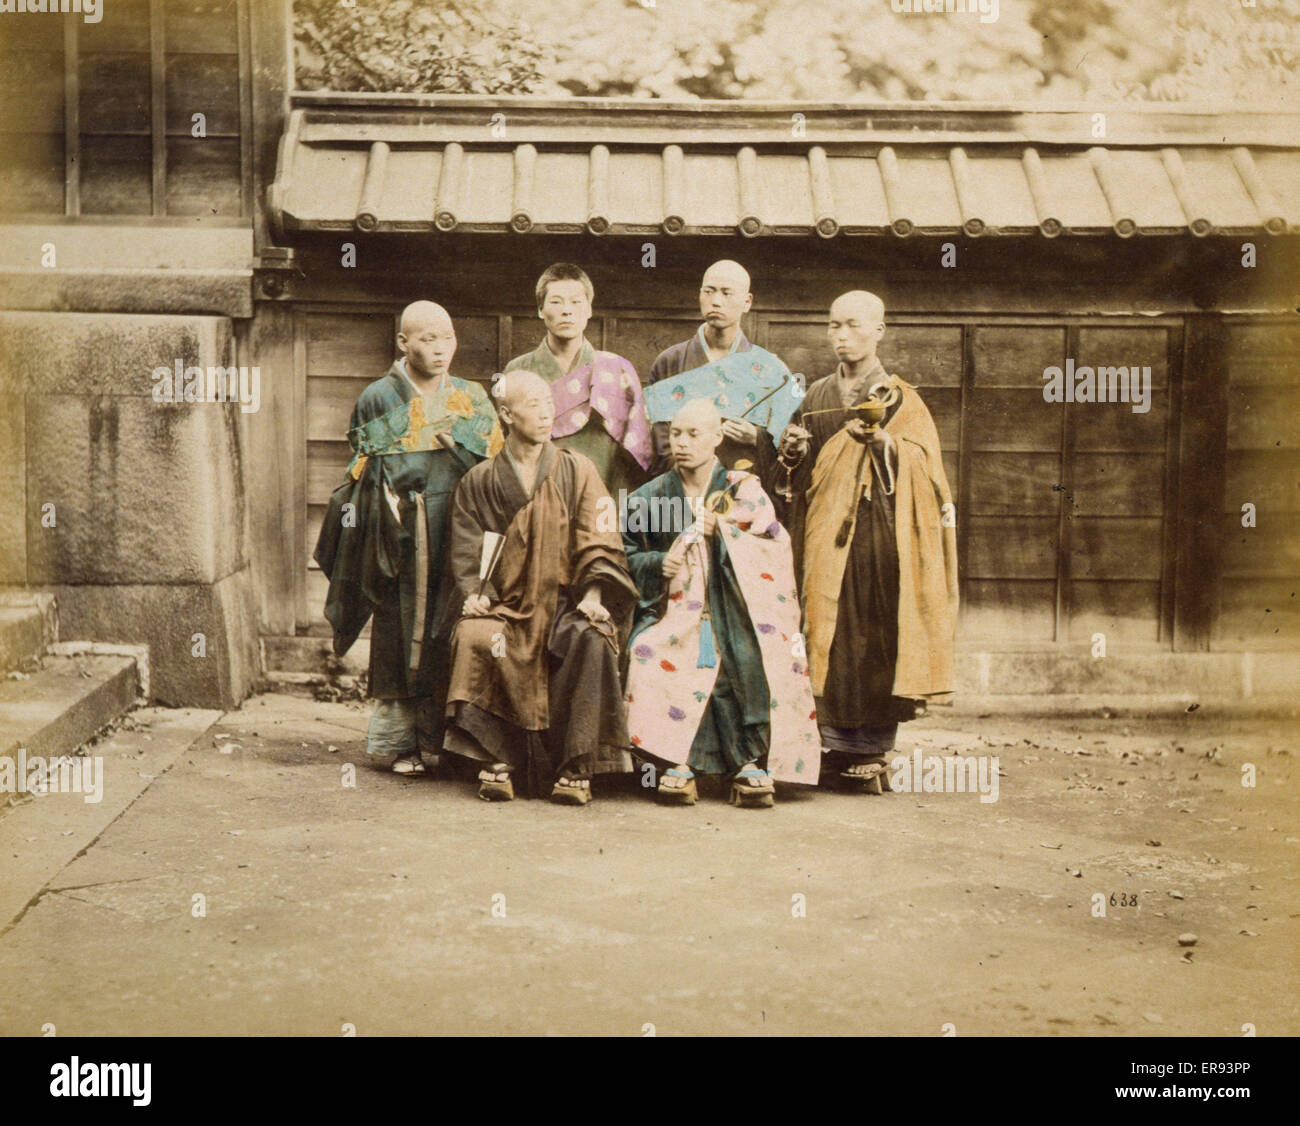 Six men, possibly monks, posed for group portrait, four standing and two sitting in front, five have their heads - Stock Image